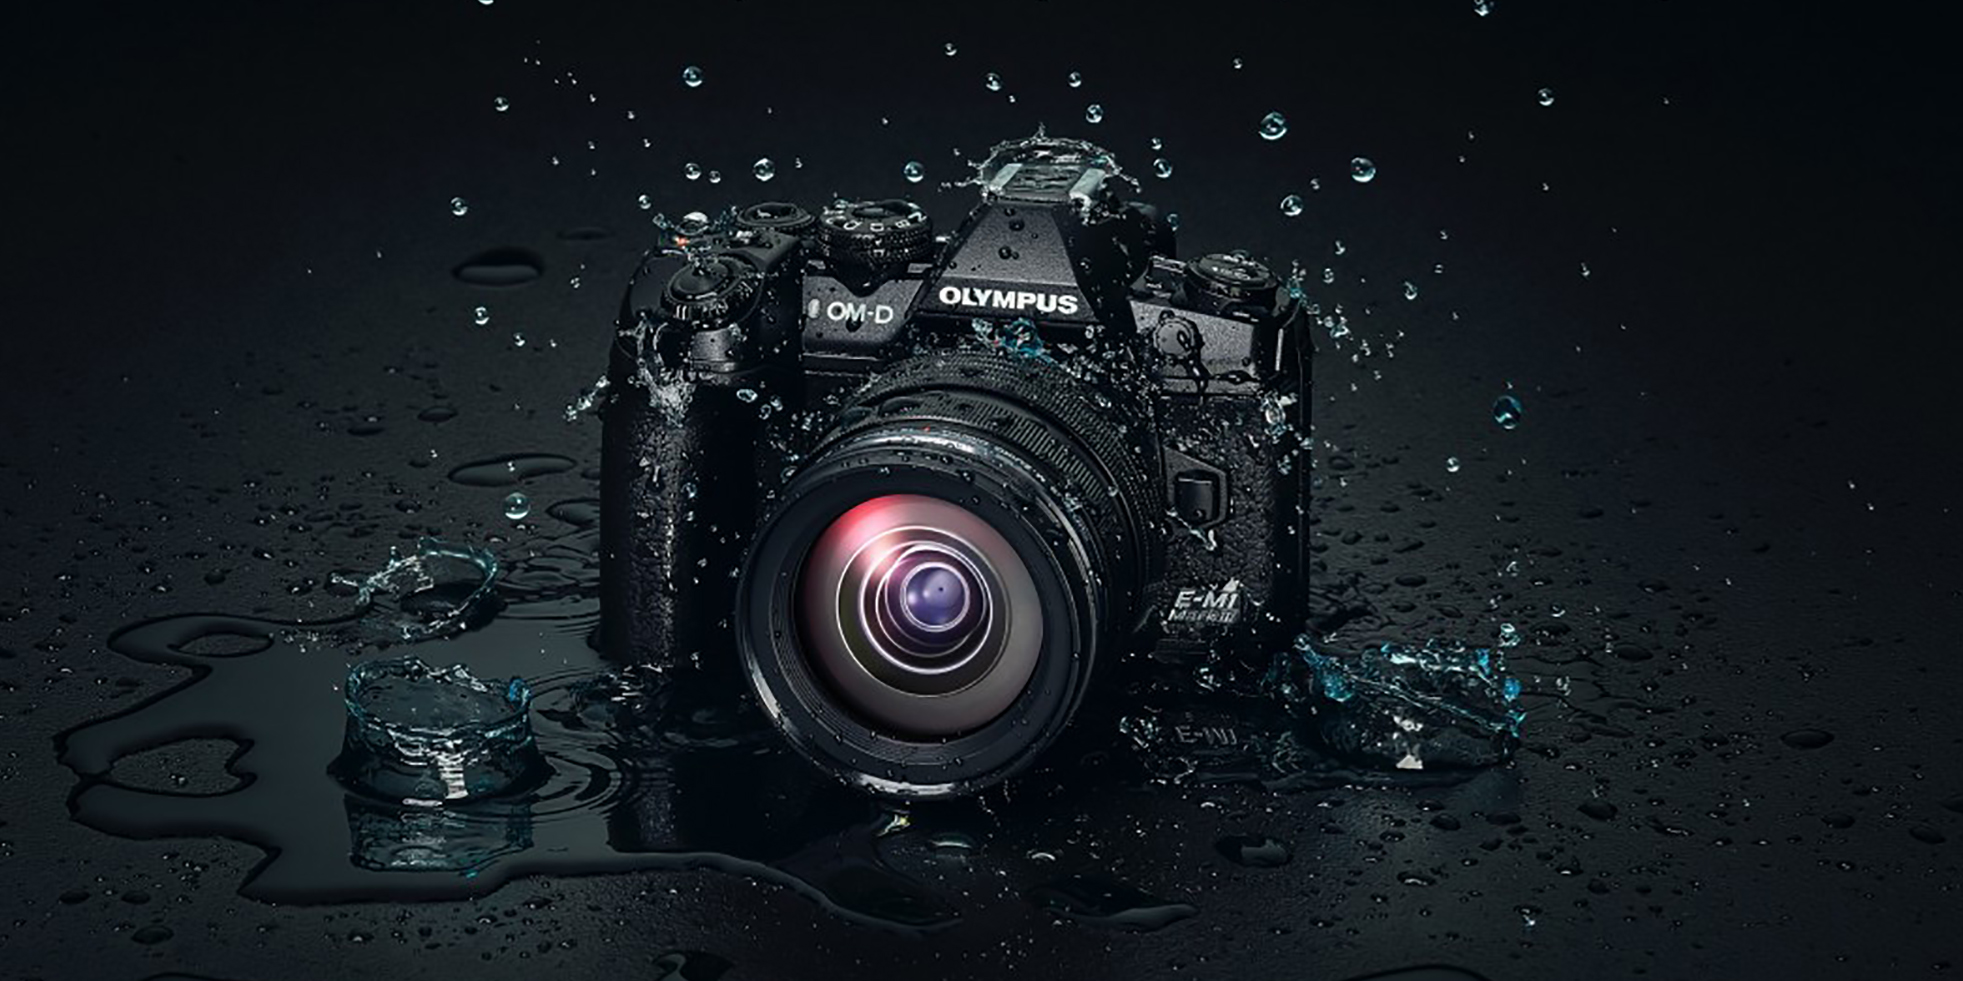 OM-D E-M1 Mark III from Olympus officially announced - 9to5Toys